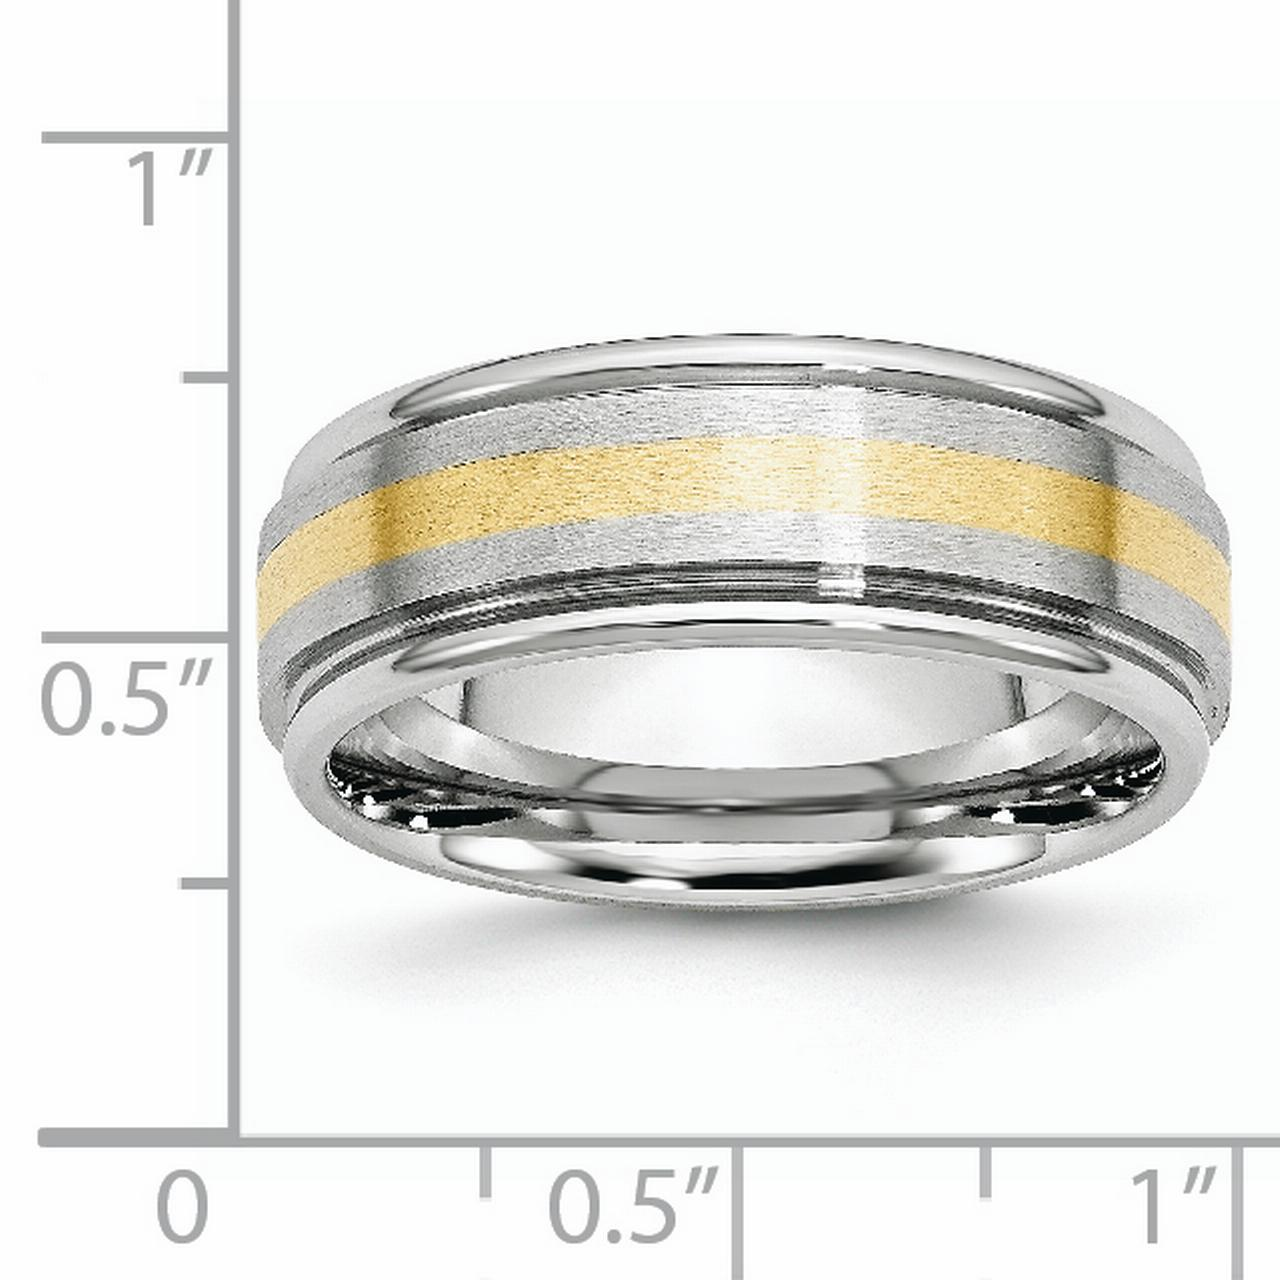 Cobalt 14k Gold Inlay 8mm Wedding Ring Band Size 11.00 Precious Metal Fine Jewelry Gifts For Women For Her - image 5 de 6